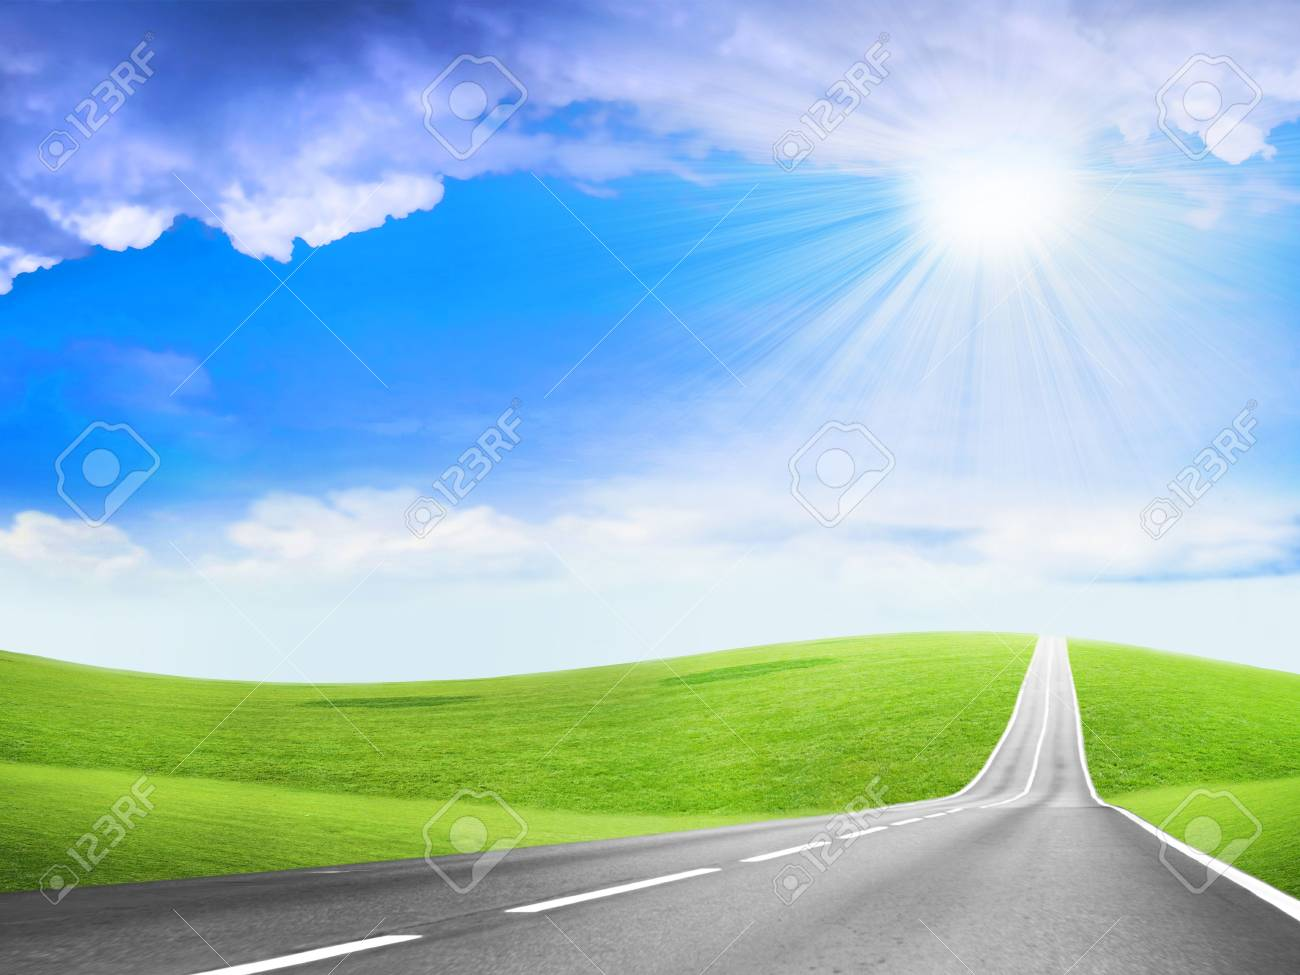 abstract scene of the road under blue sky Stock Photo - 4456433